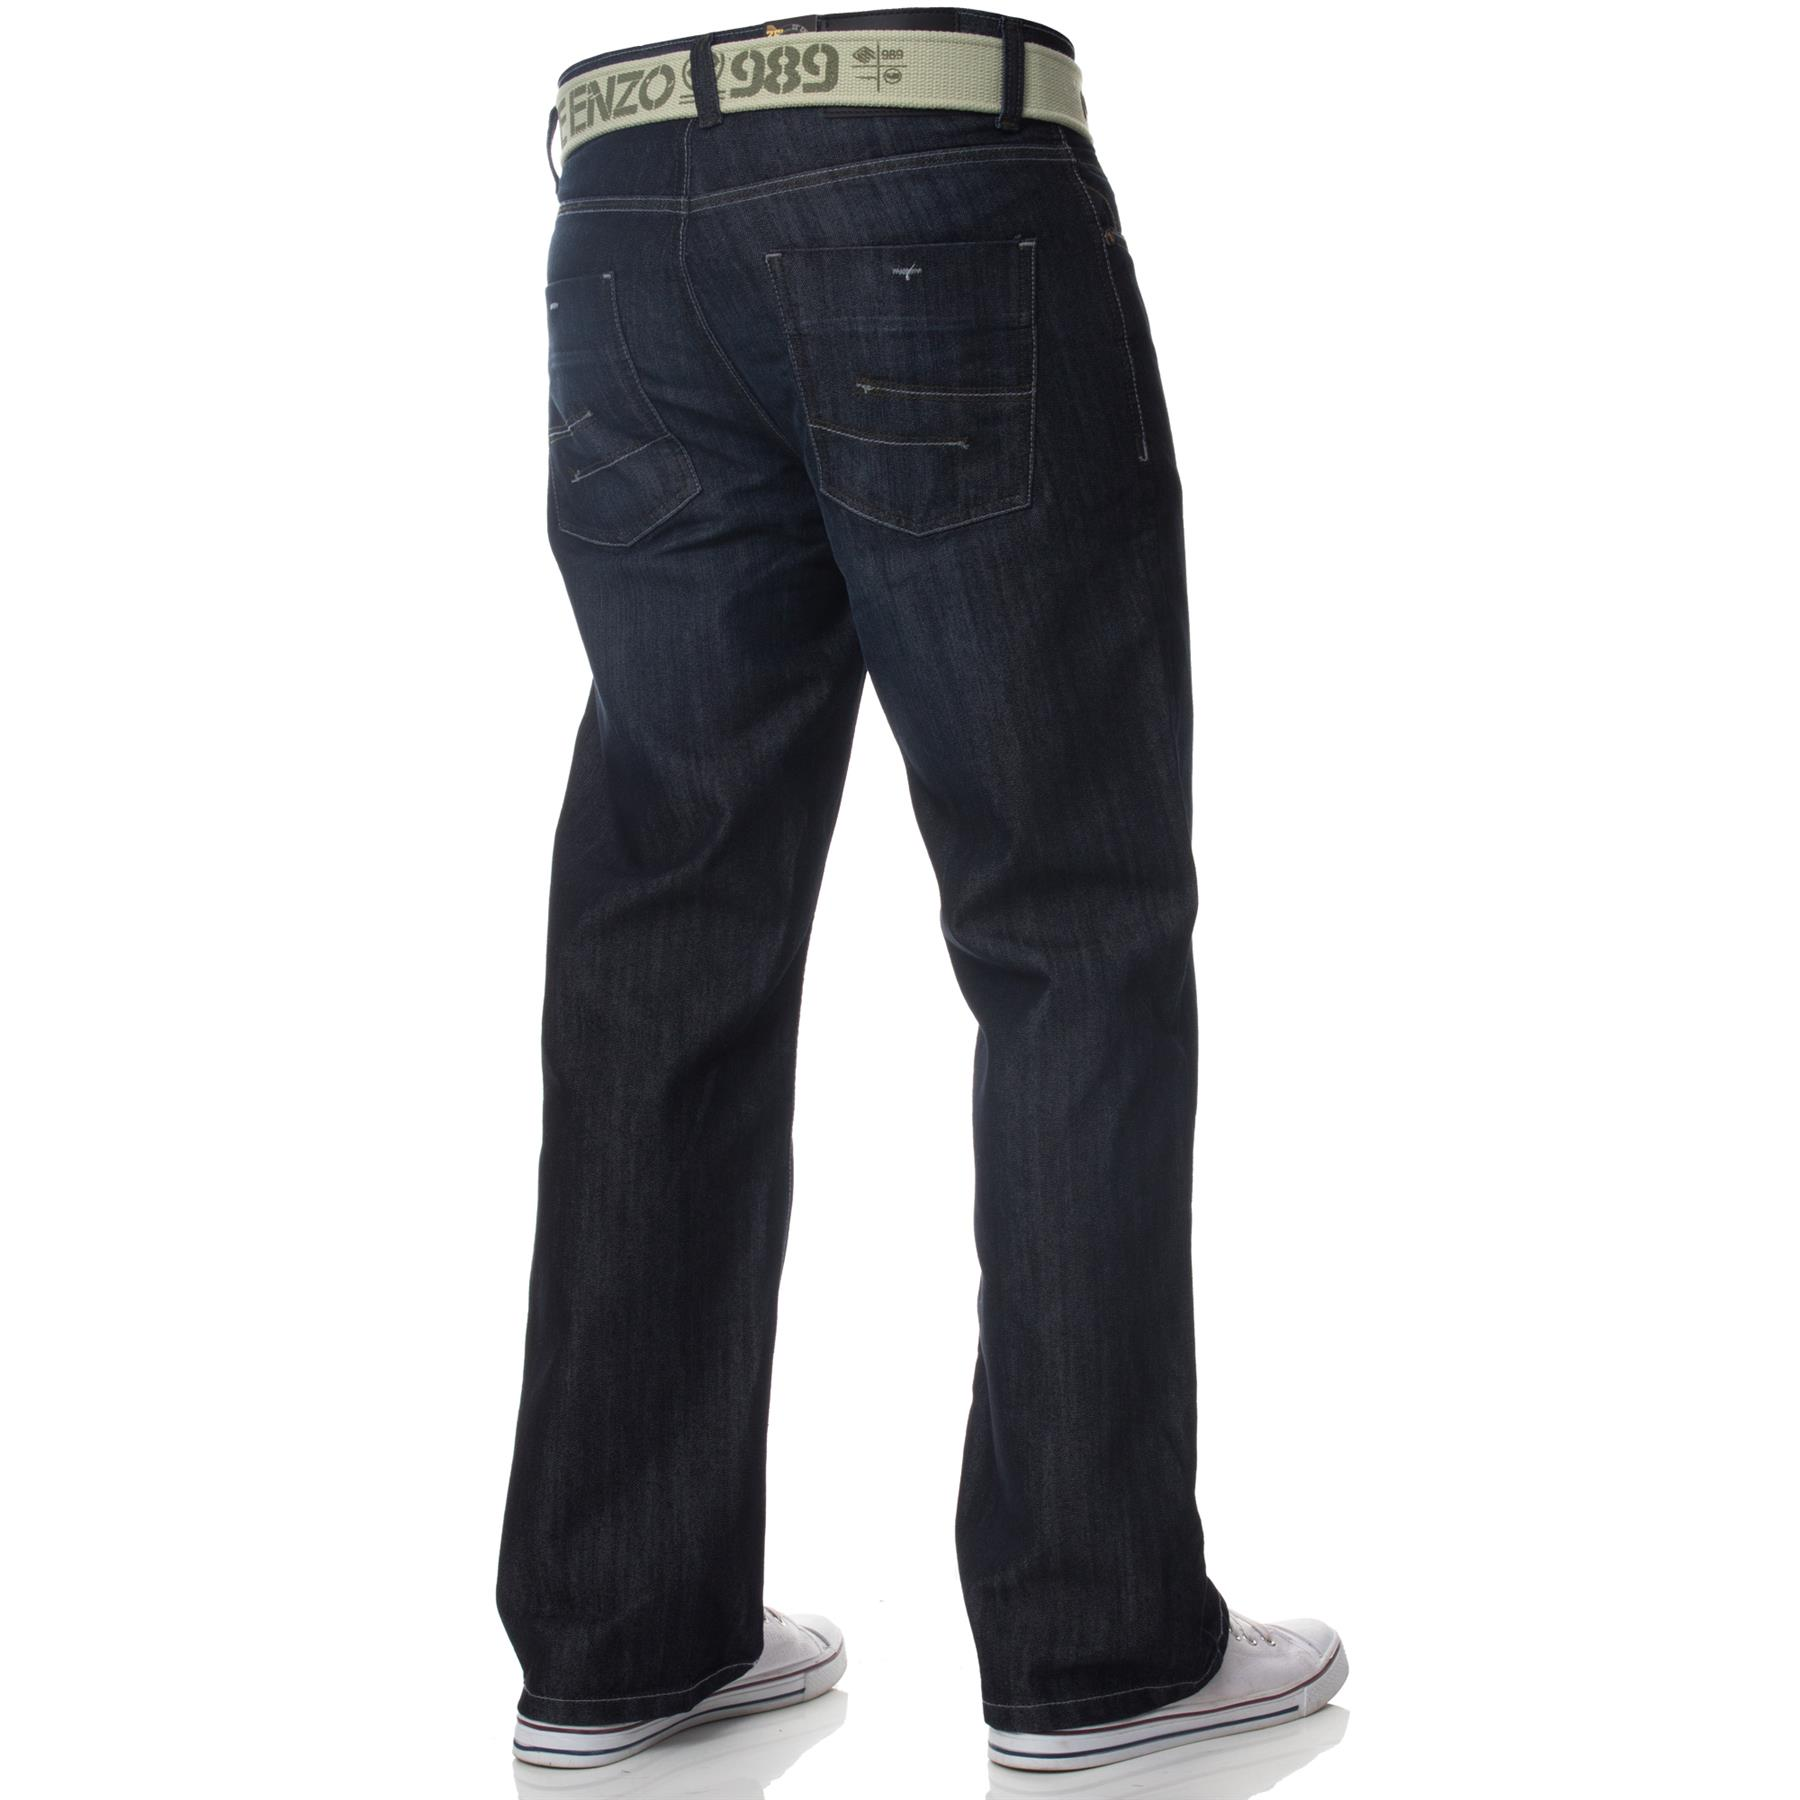 Enzo-Mens-Jeans-Big-Tall-Leg-King-Size-Denim-Pants-Chino-Trousers-Waist-44-034-60-034 miniature 7